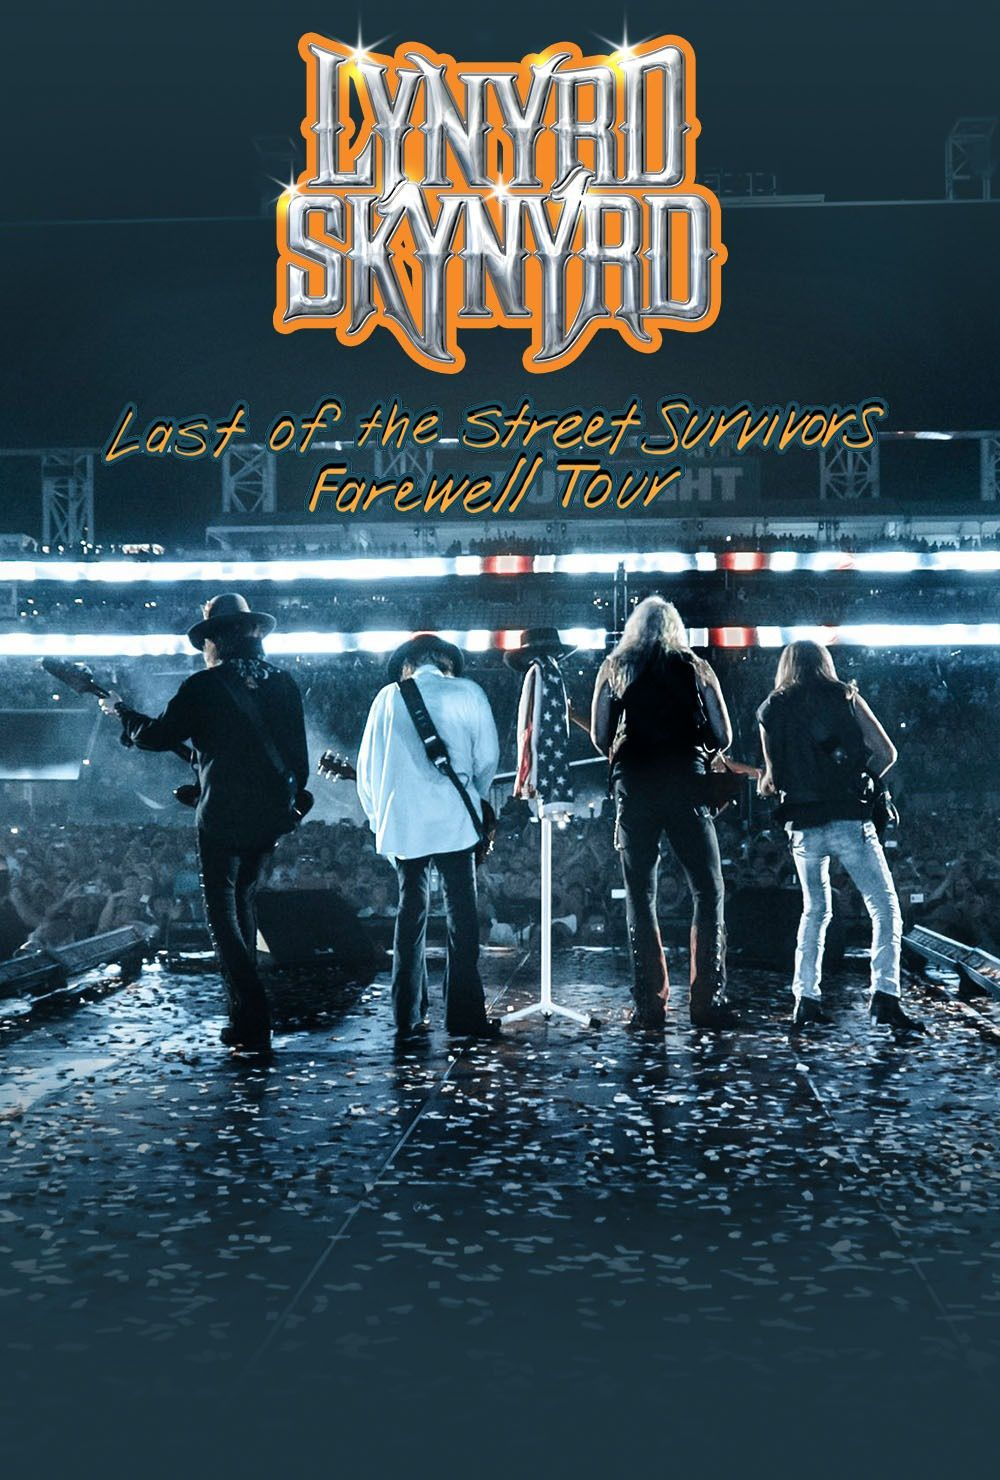 Lynryd Skynyrd : Last of The Street Survivors Farewell Tour (BANDE-ANNONCE)